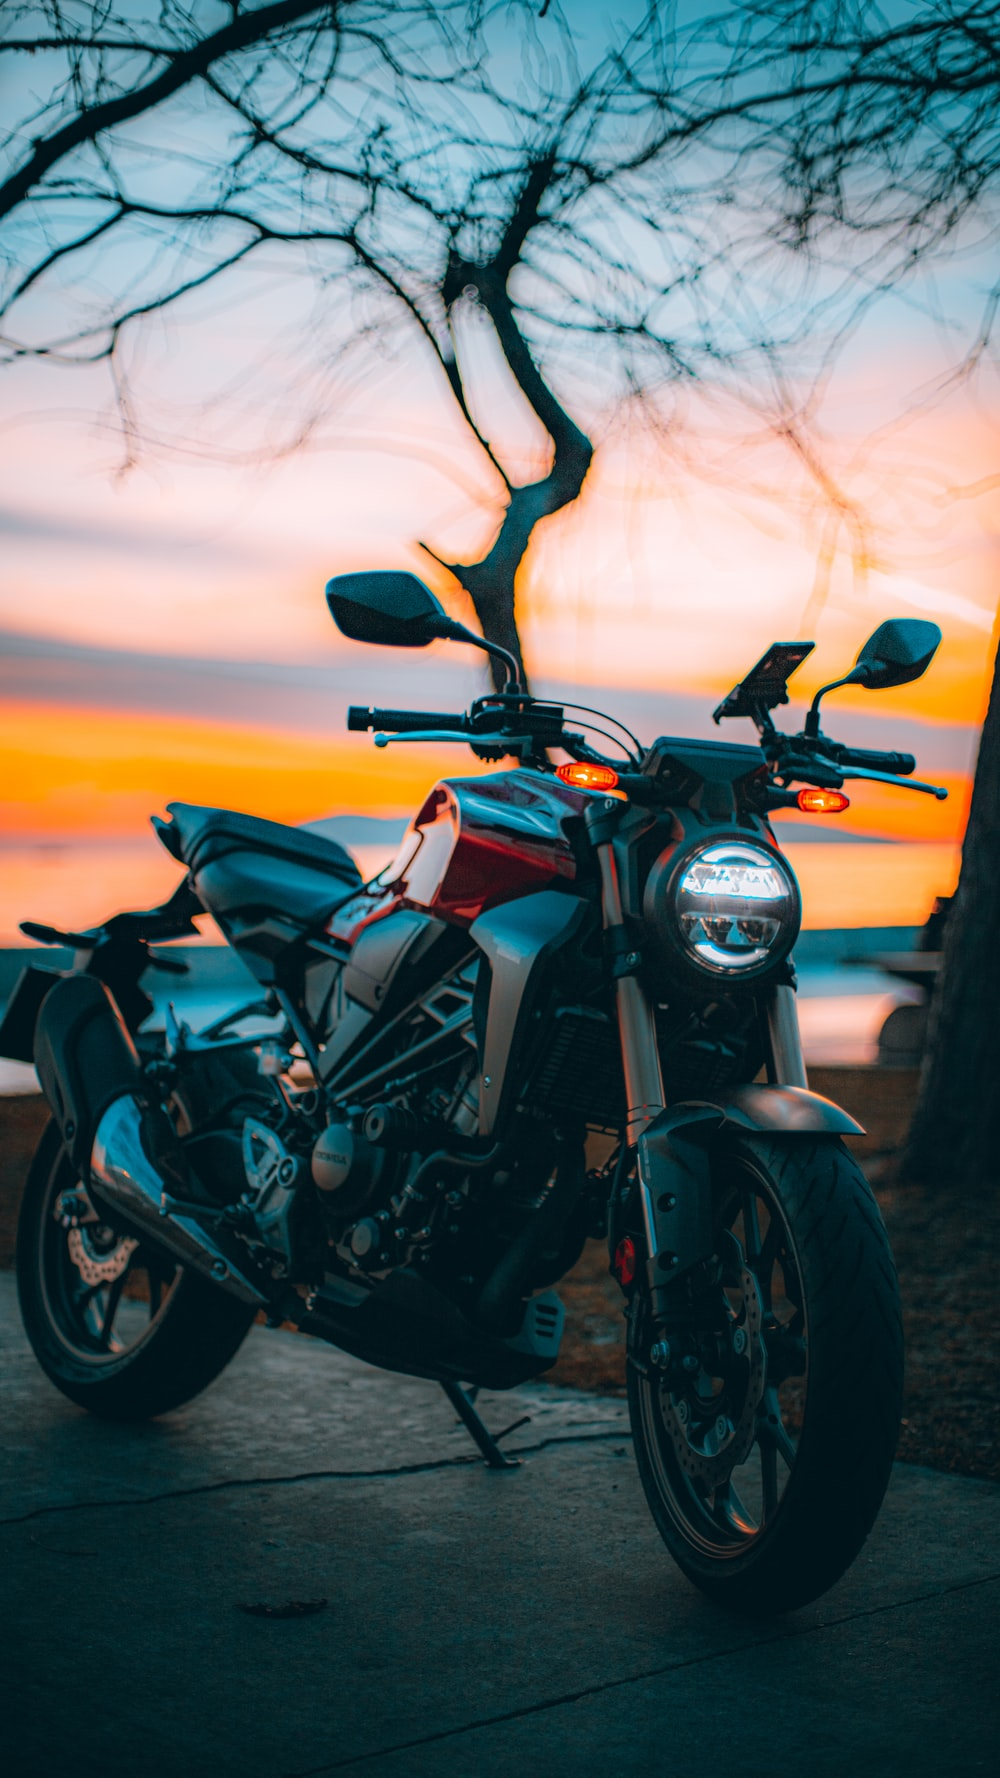 black and gray motorcycle during sunset